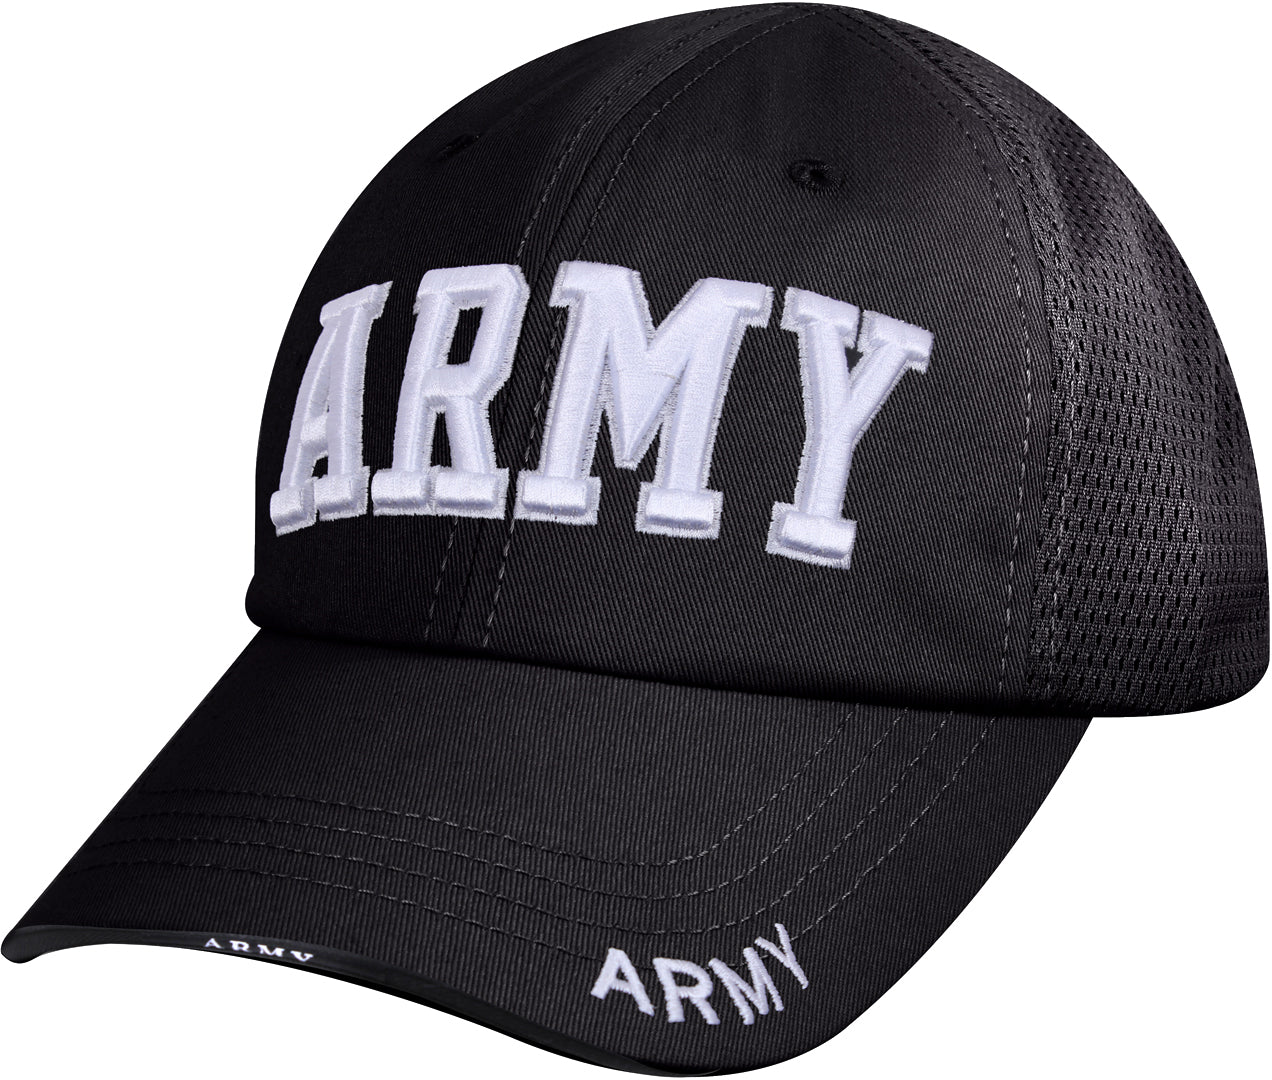 Black - Army Mesh Back Tactical Cap